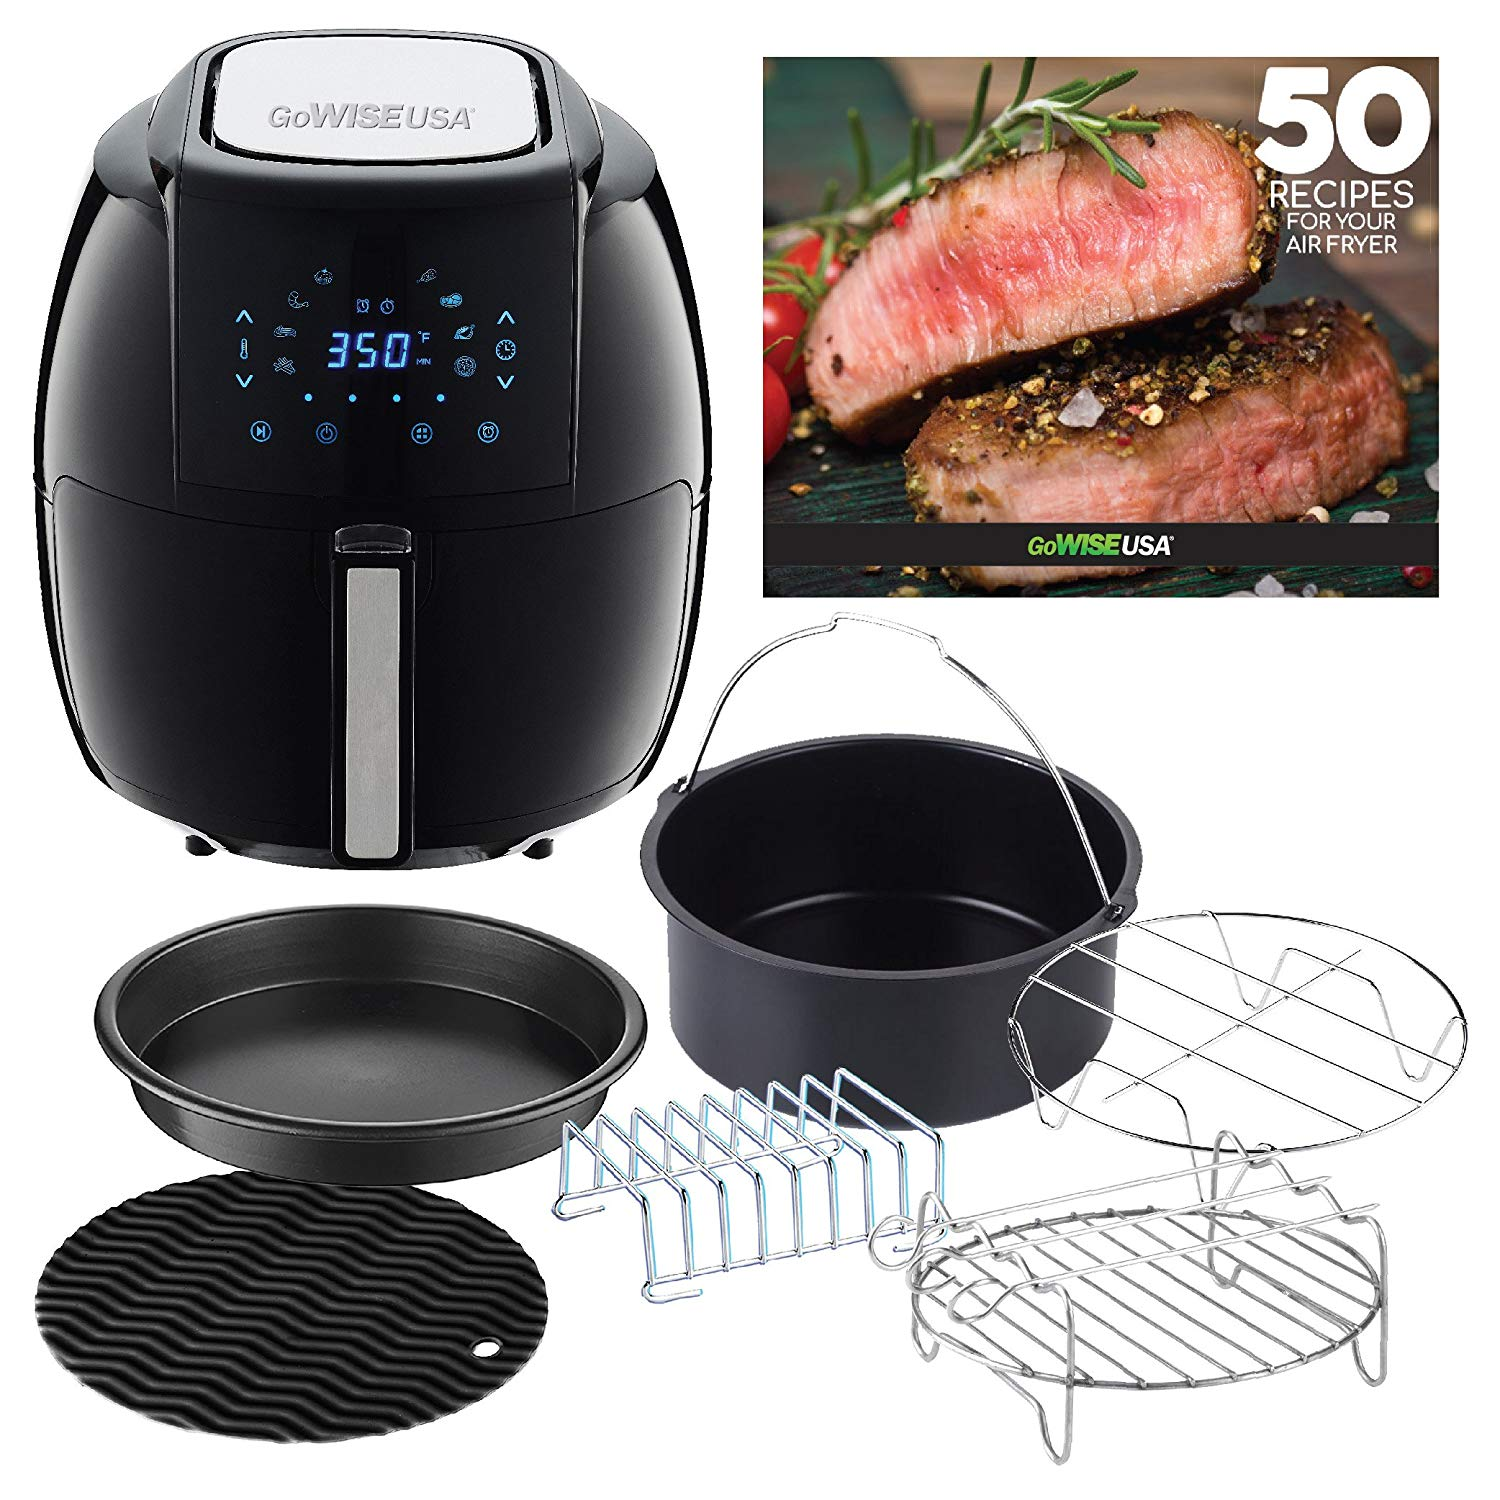 GoWise USA Air Fryer